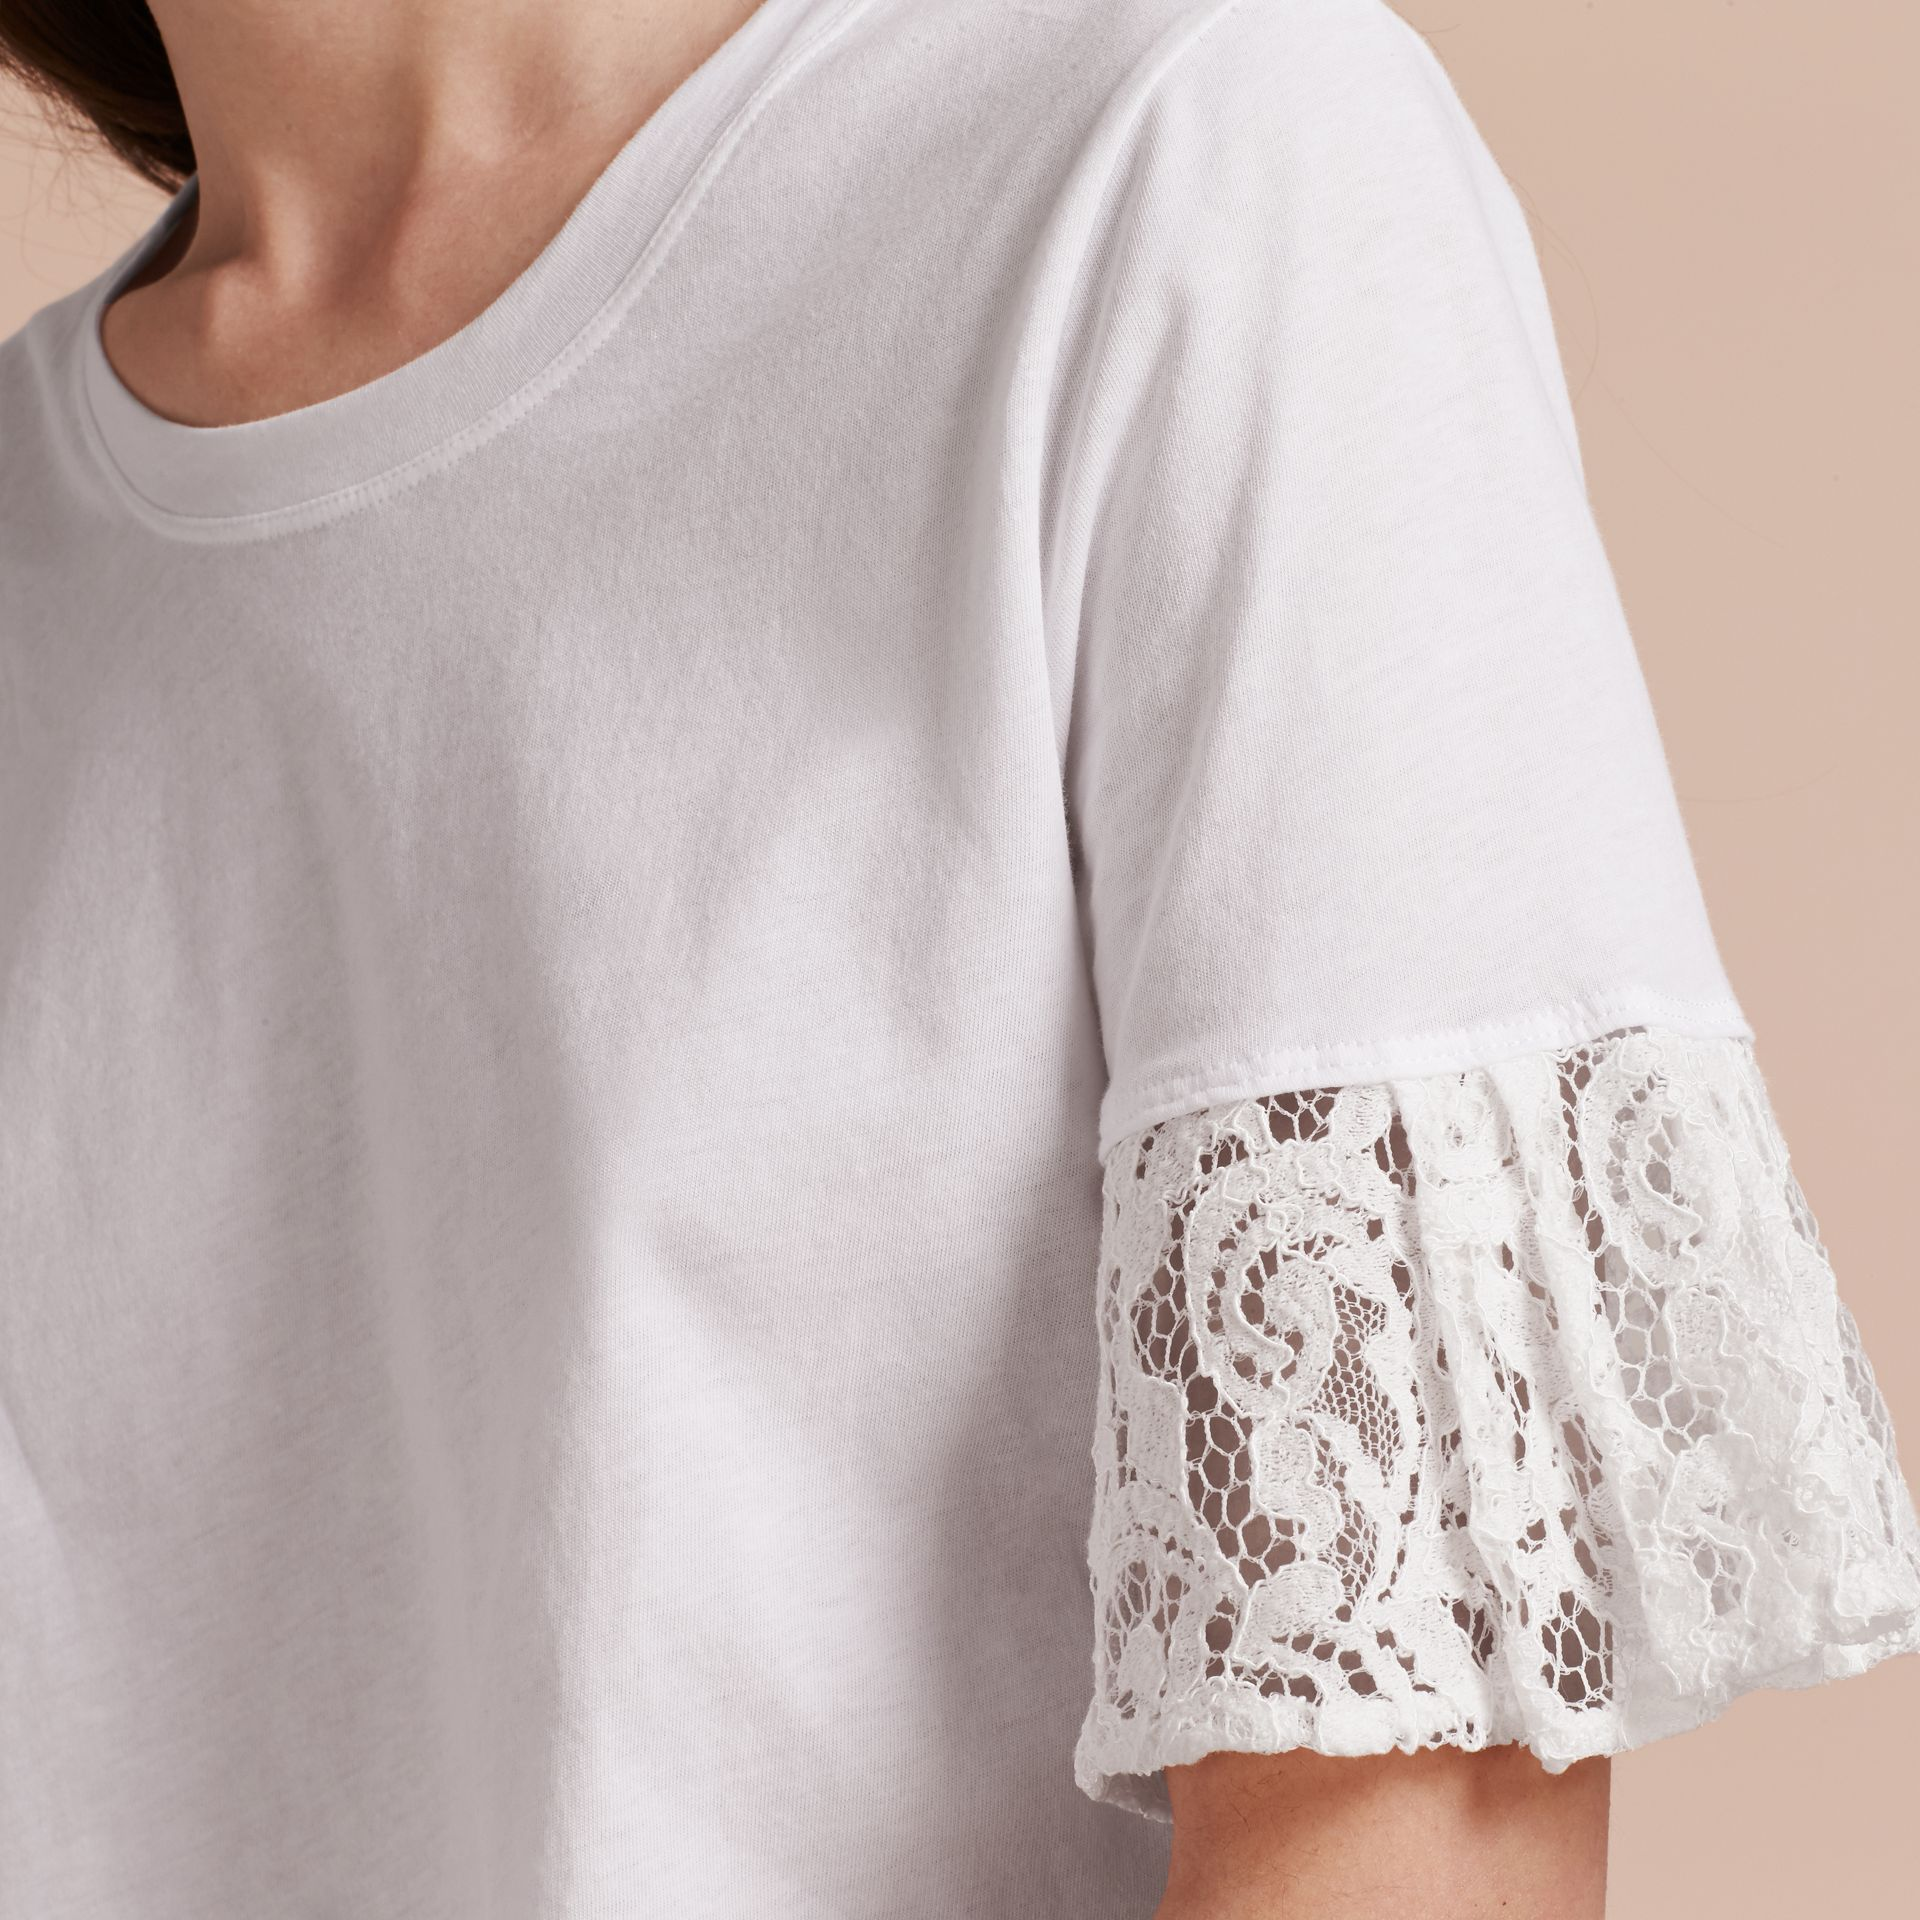 White Lace Trim Cotton T-shirt White - gallery image 5